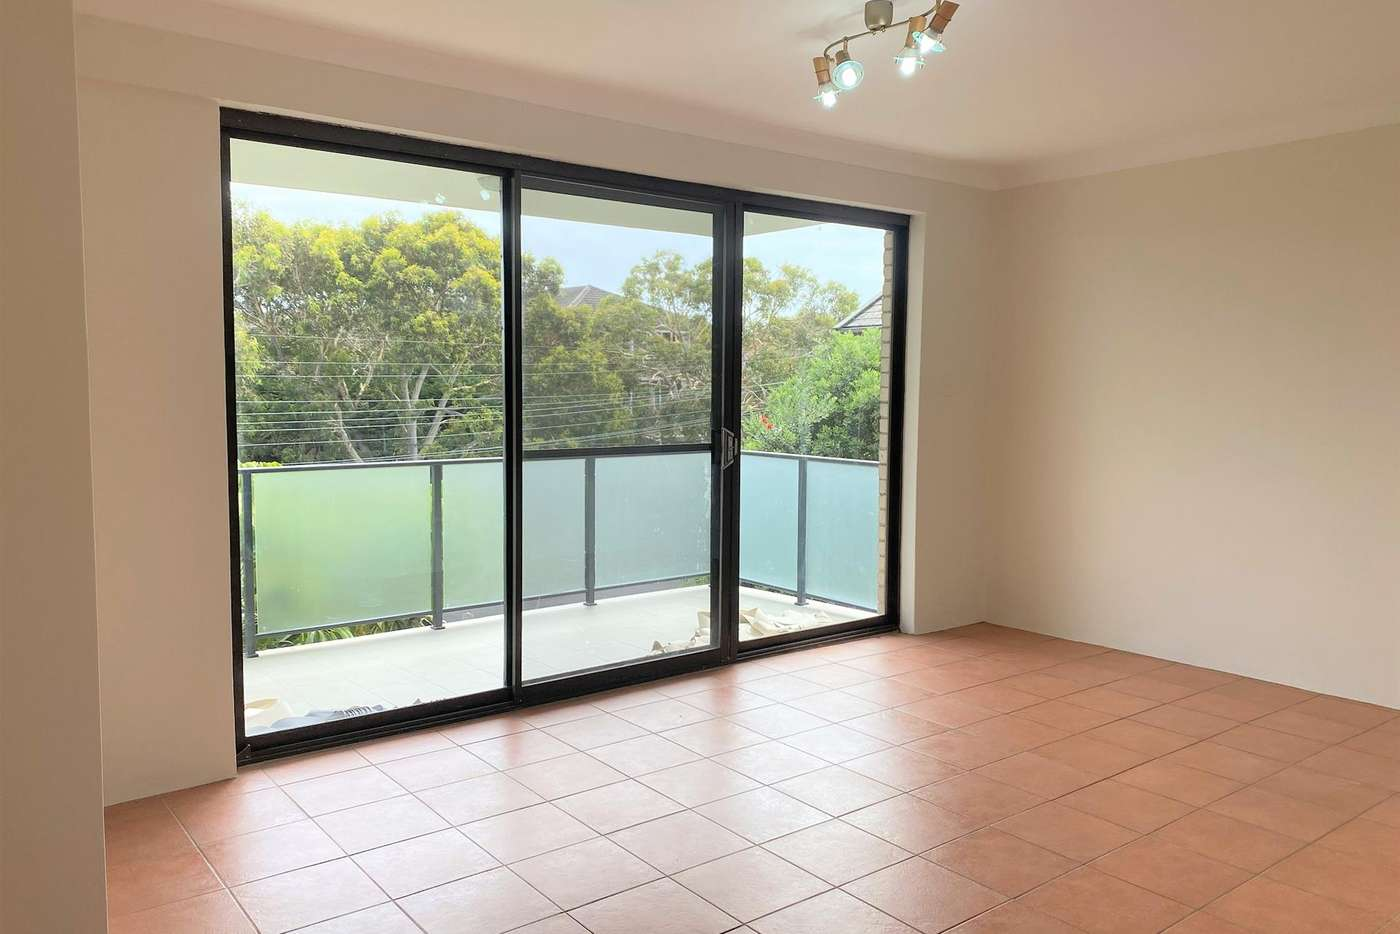 Main view of Homely apartment listing, 5/52-54 Cowper Street, Randwick NSW 2031